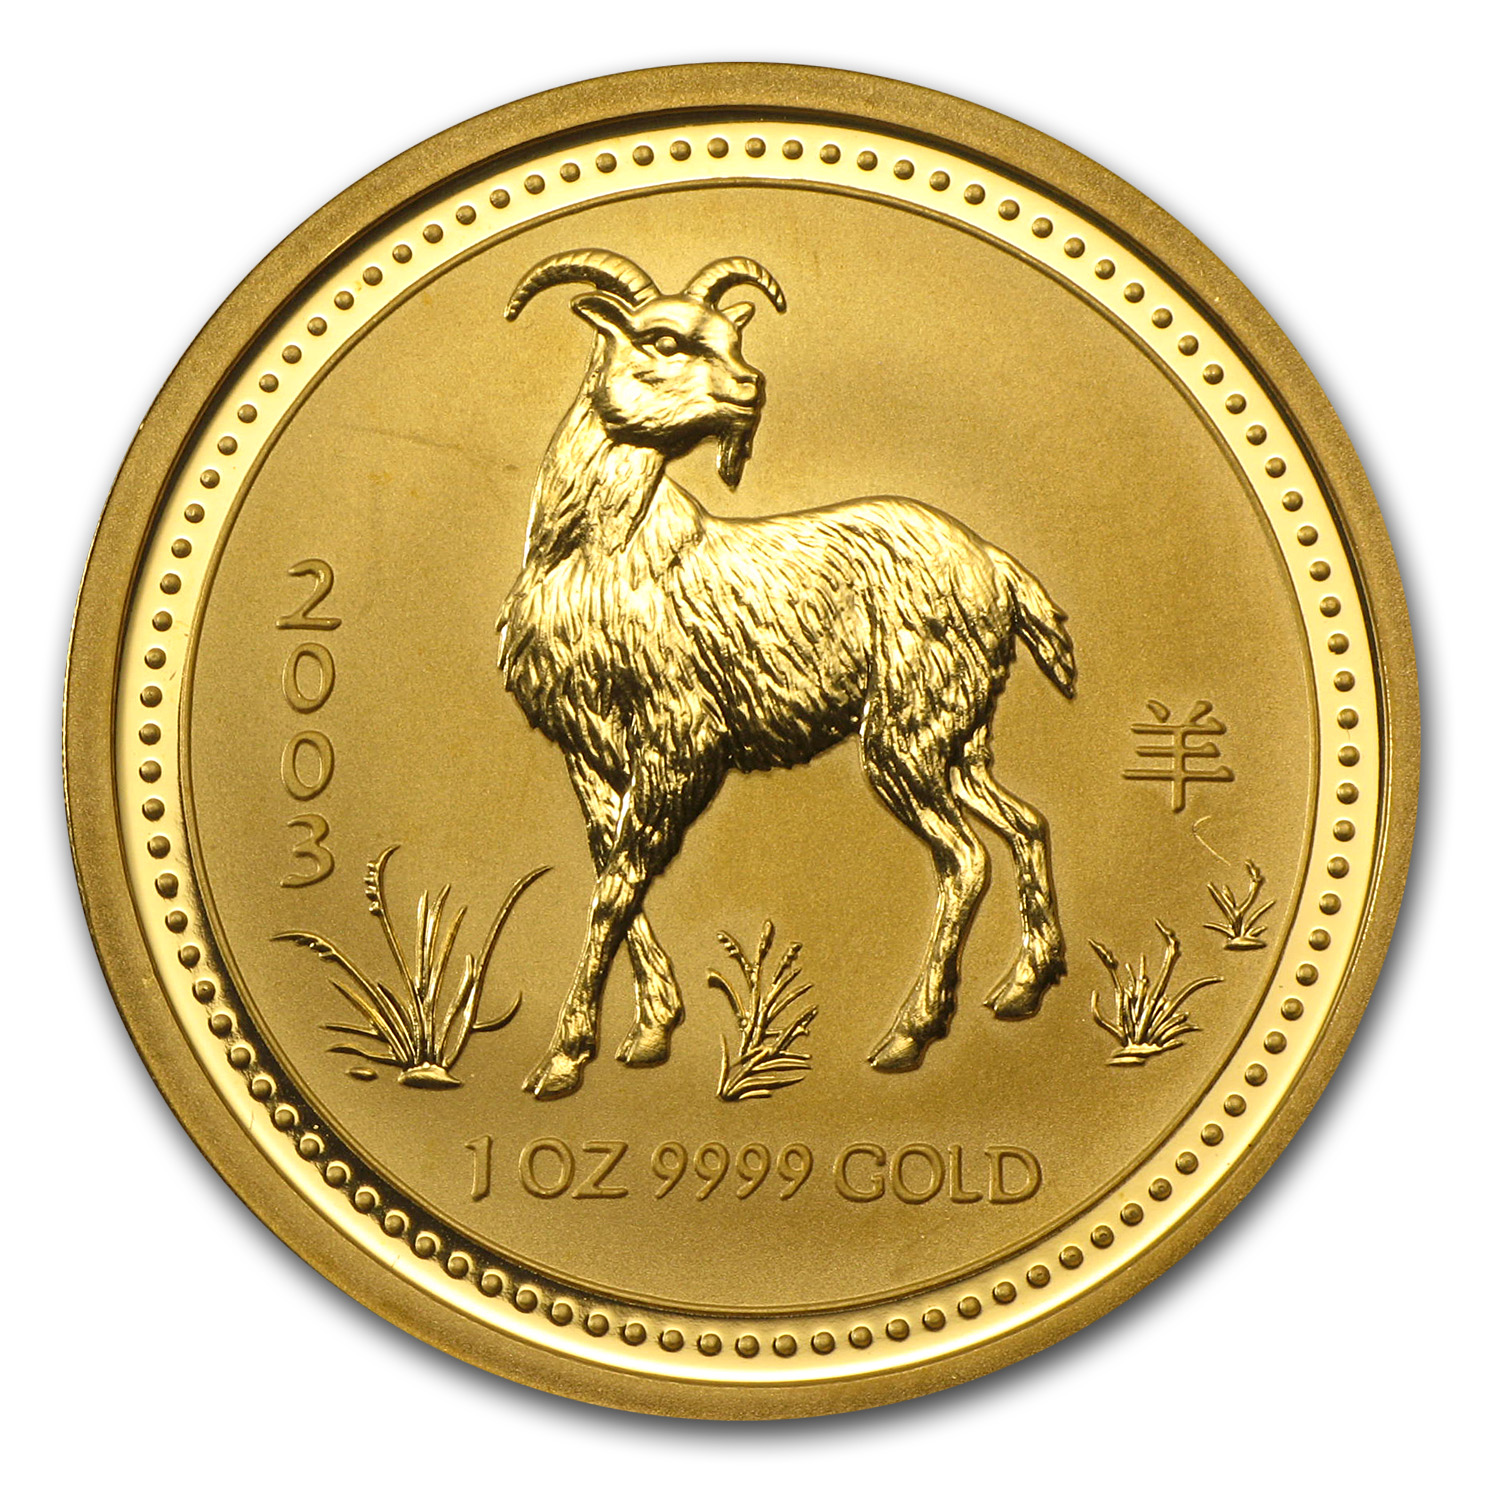 2003 1 oz Gold Year of the Goat Lunar Coin SI (Light Abrasions)